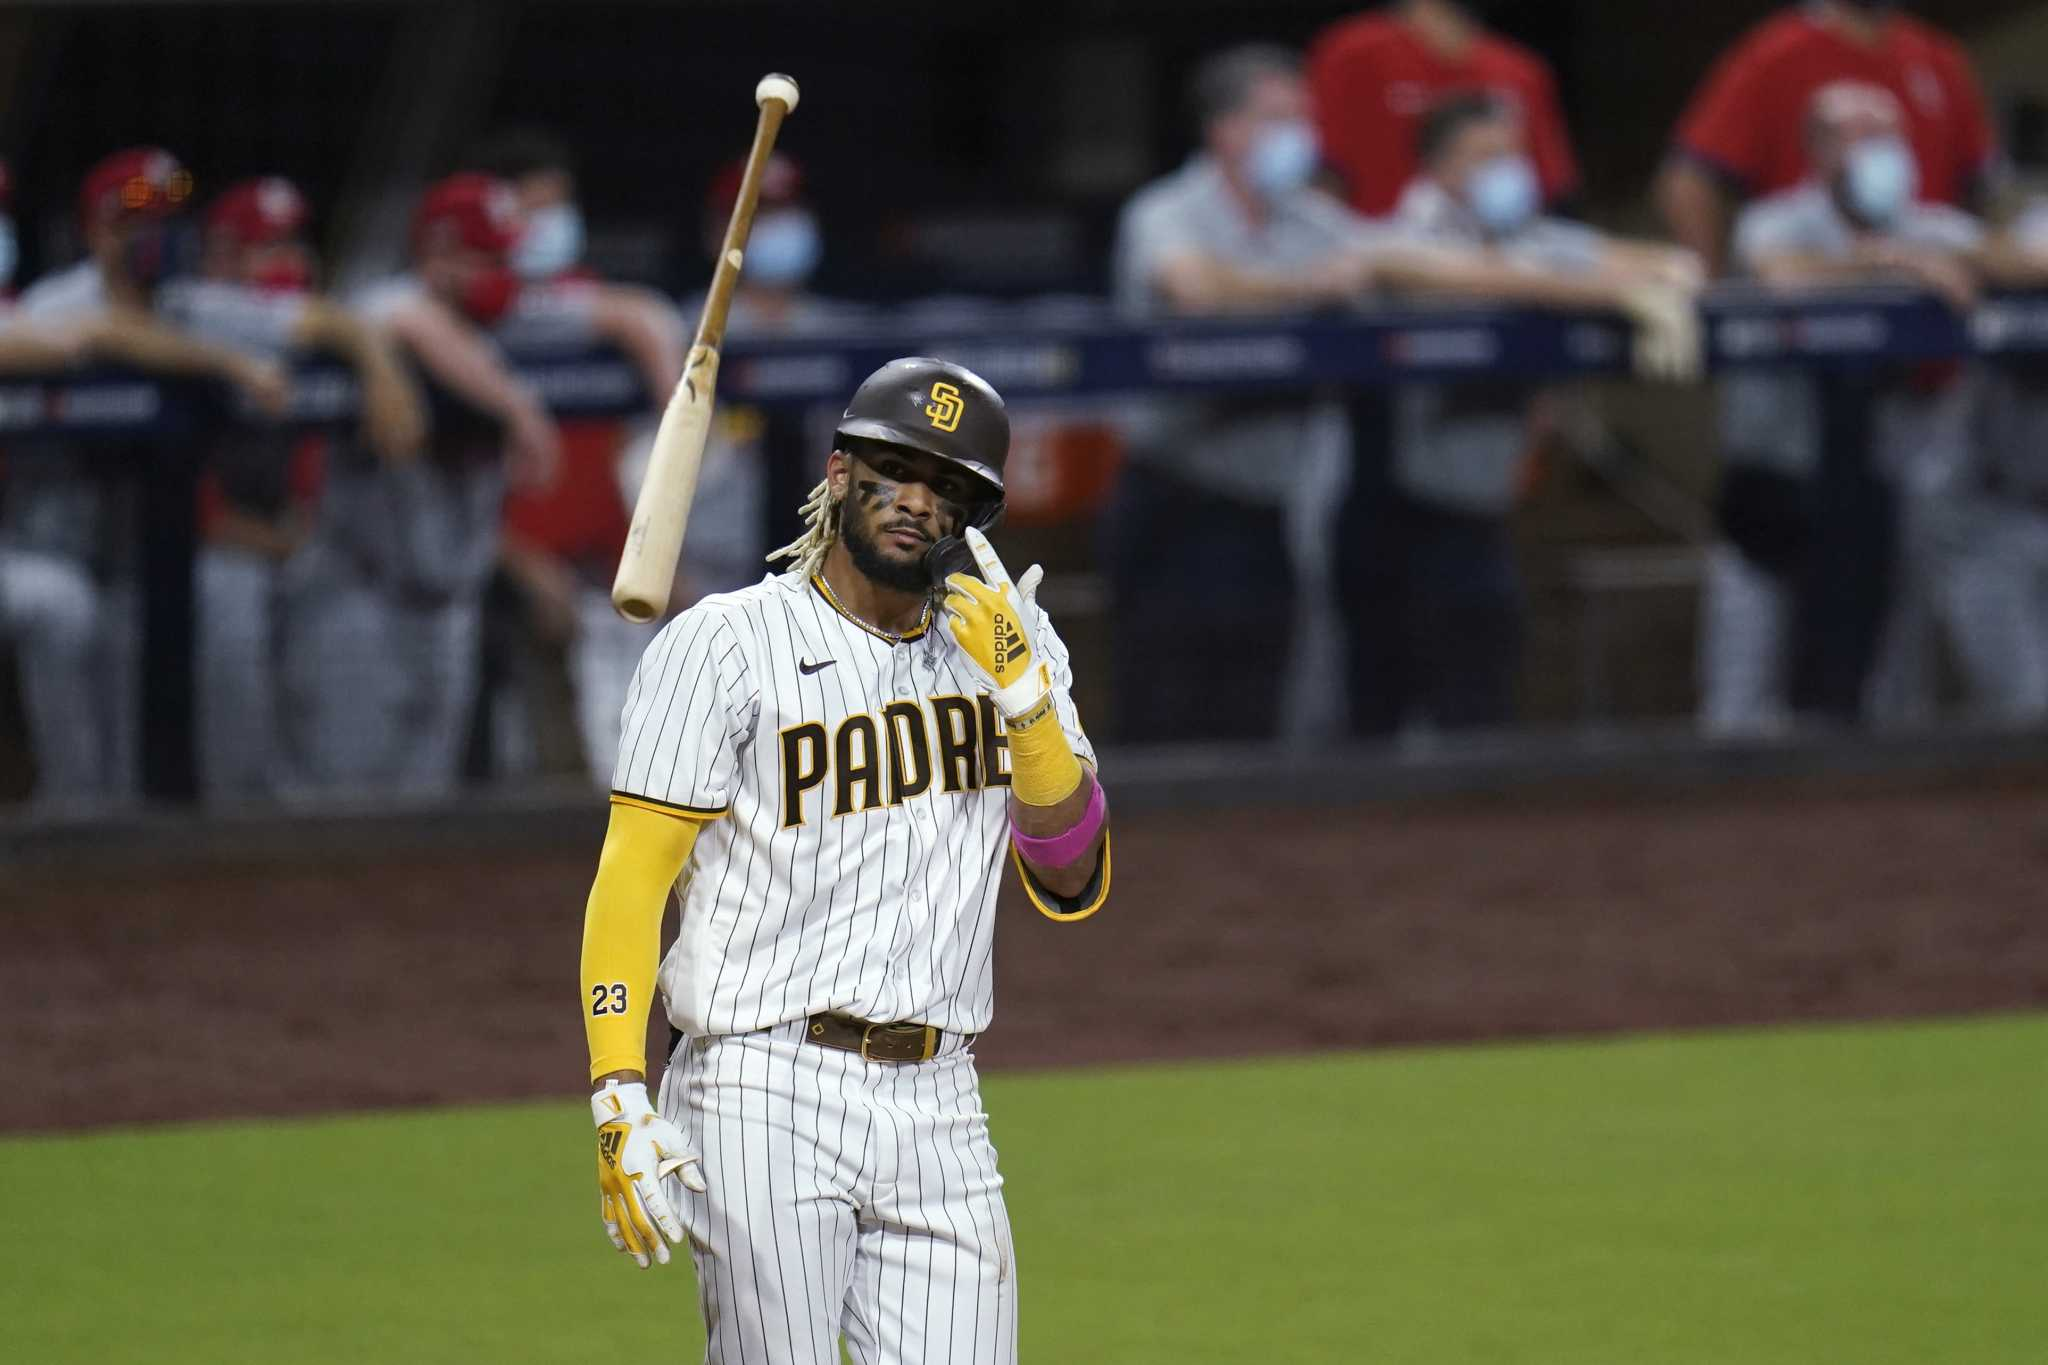 Tates, Myers Homer twice, and Padres survive with a 9-11 win